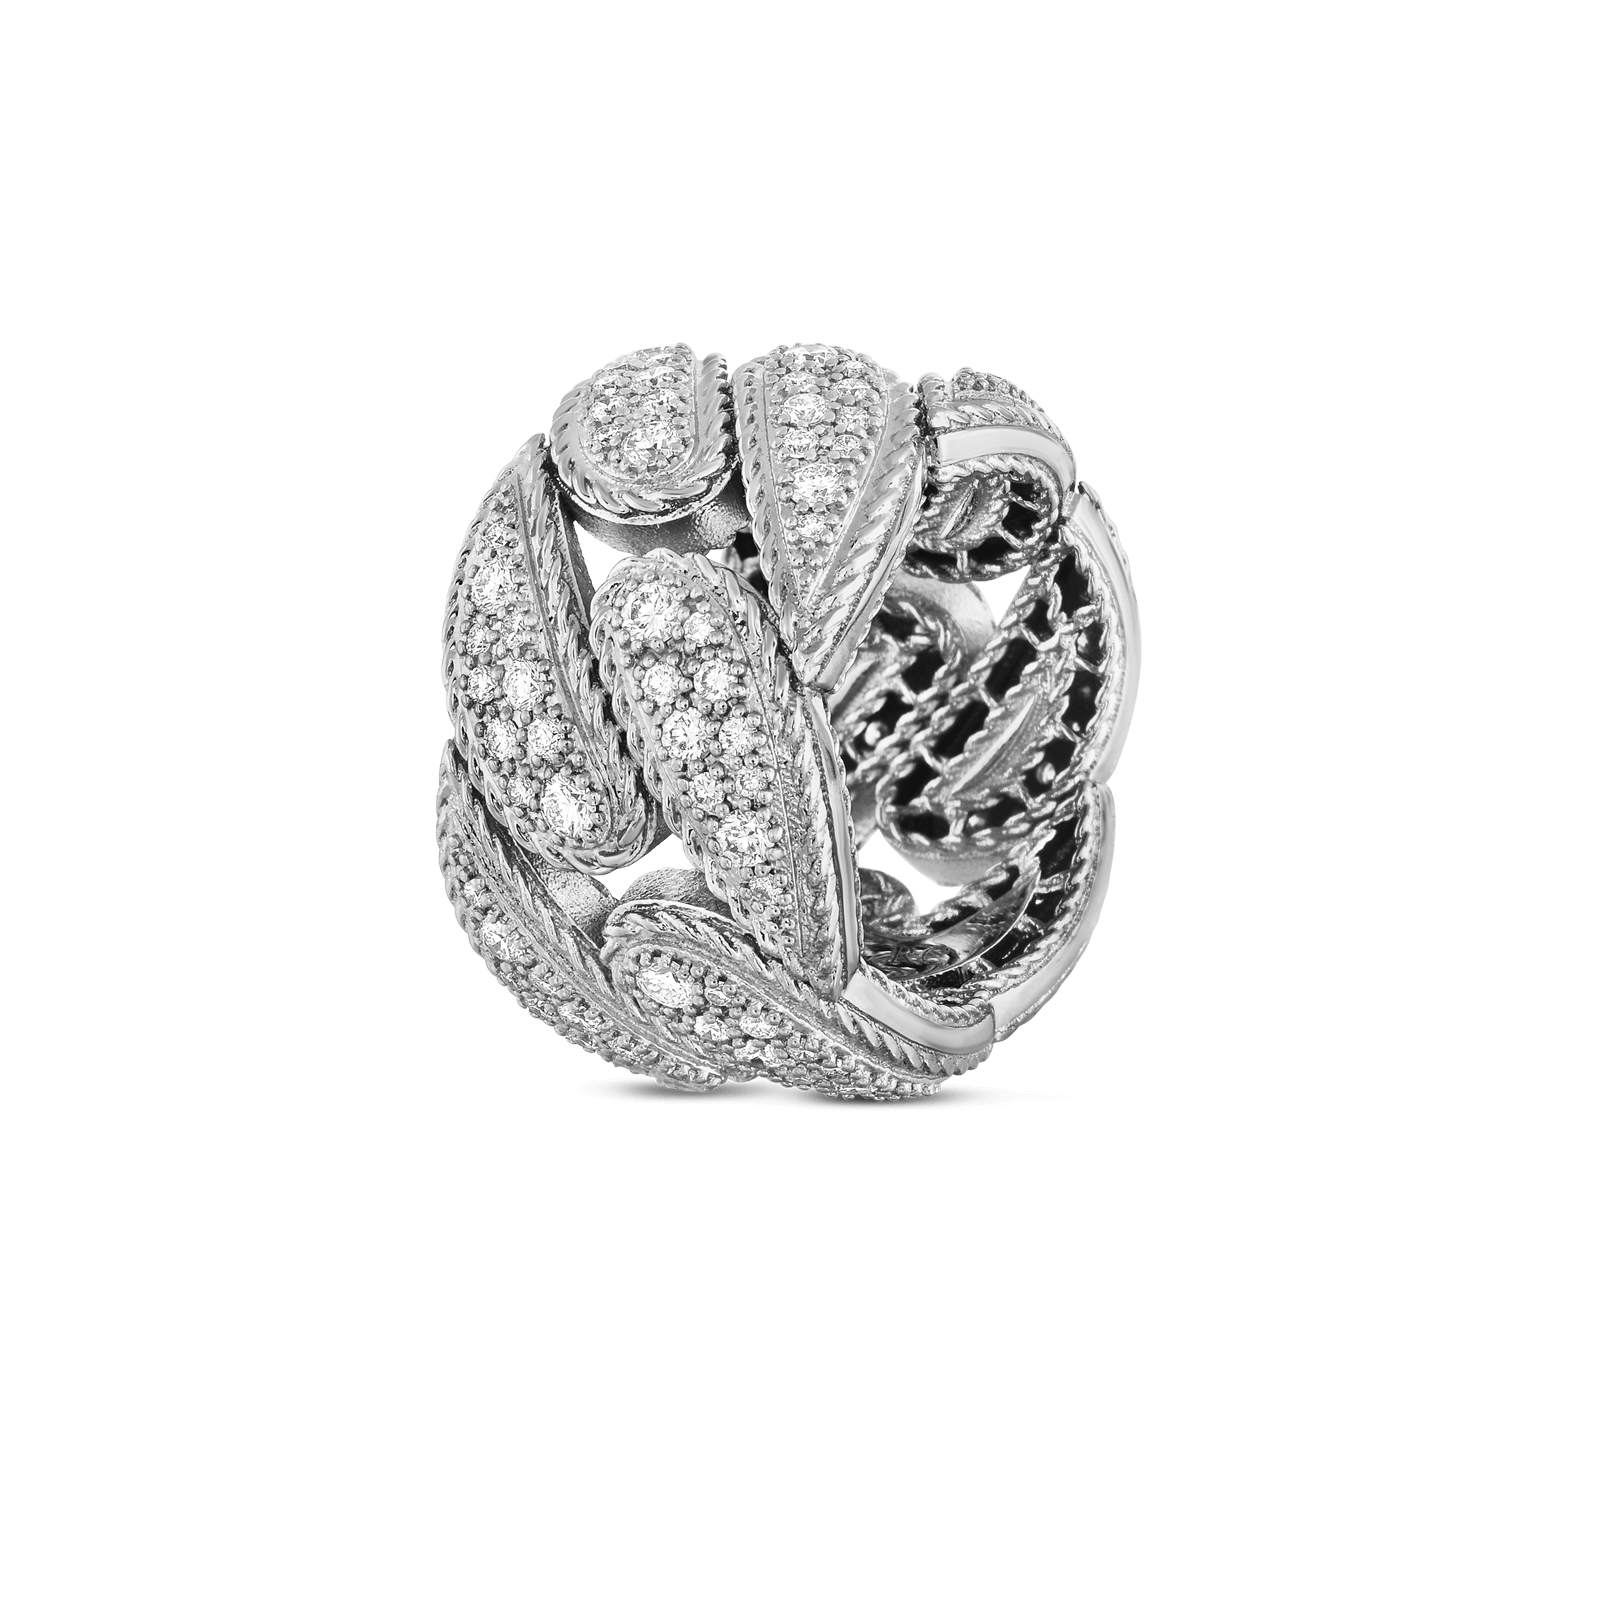 Roberto-Coin-18k-white-gold-Gourmentte Link Ring with Diamonds-8882218AW65X0alt